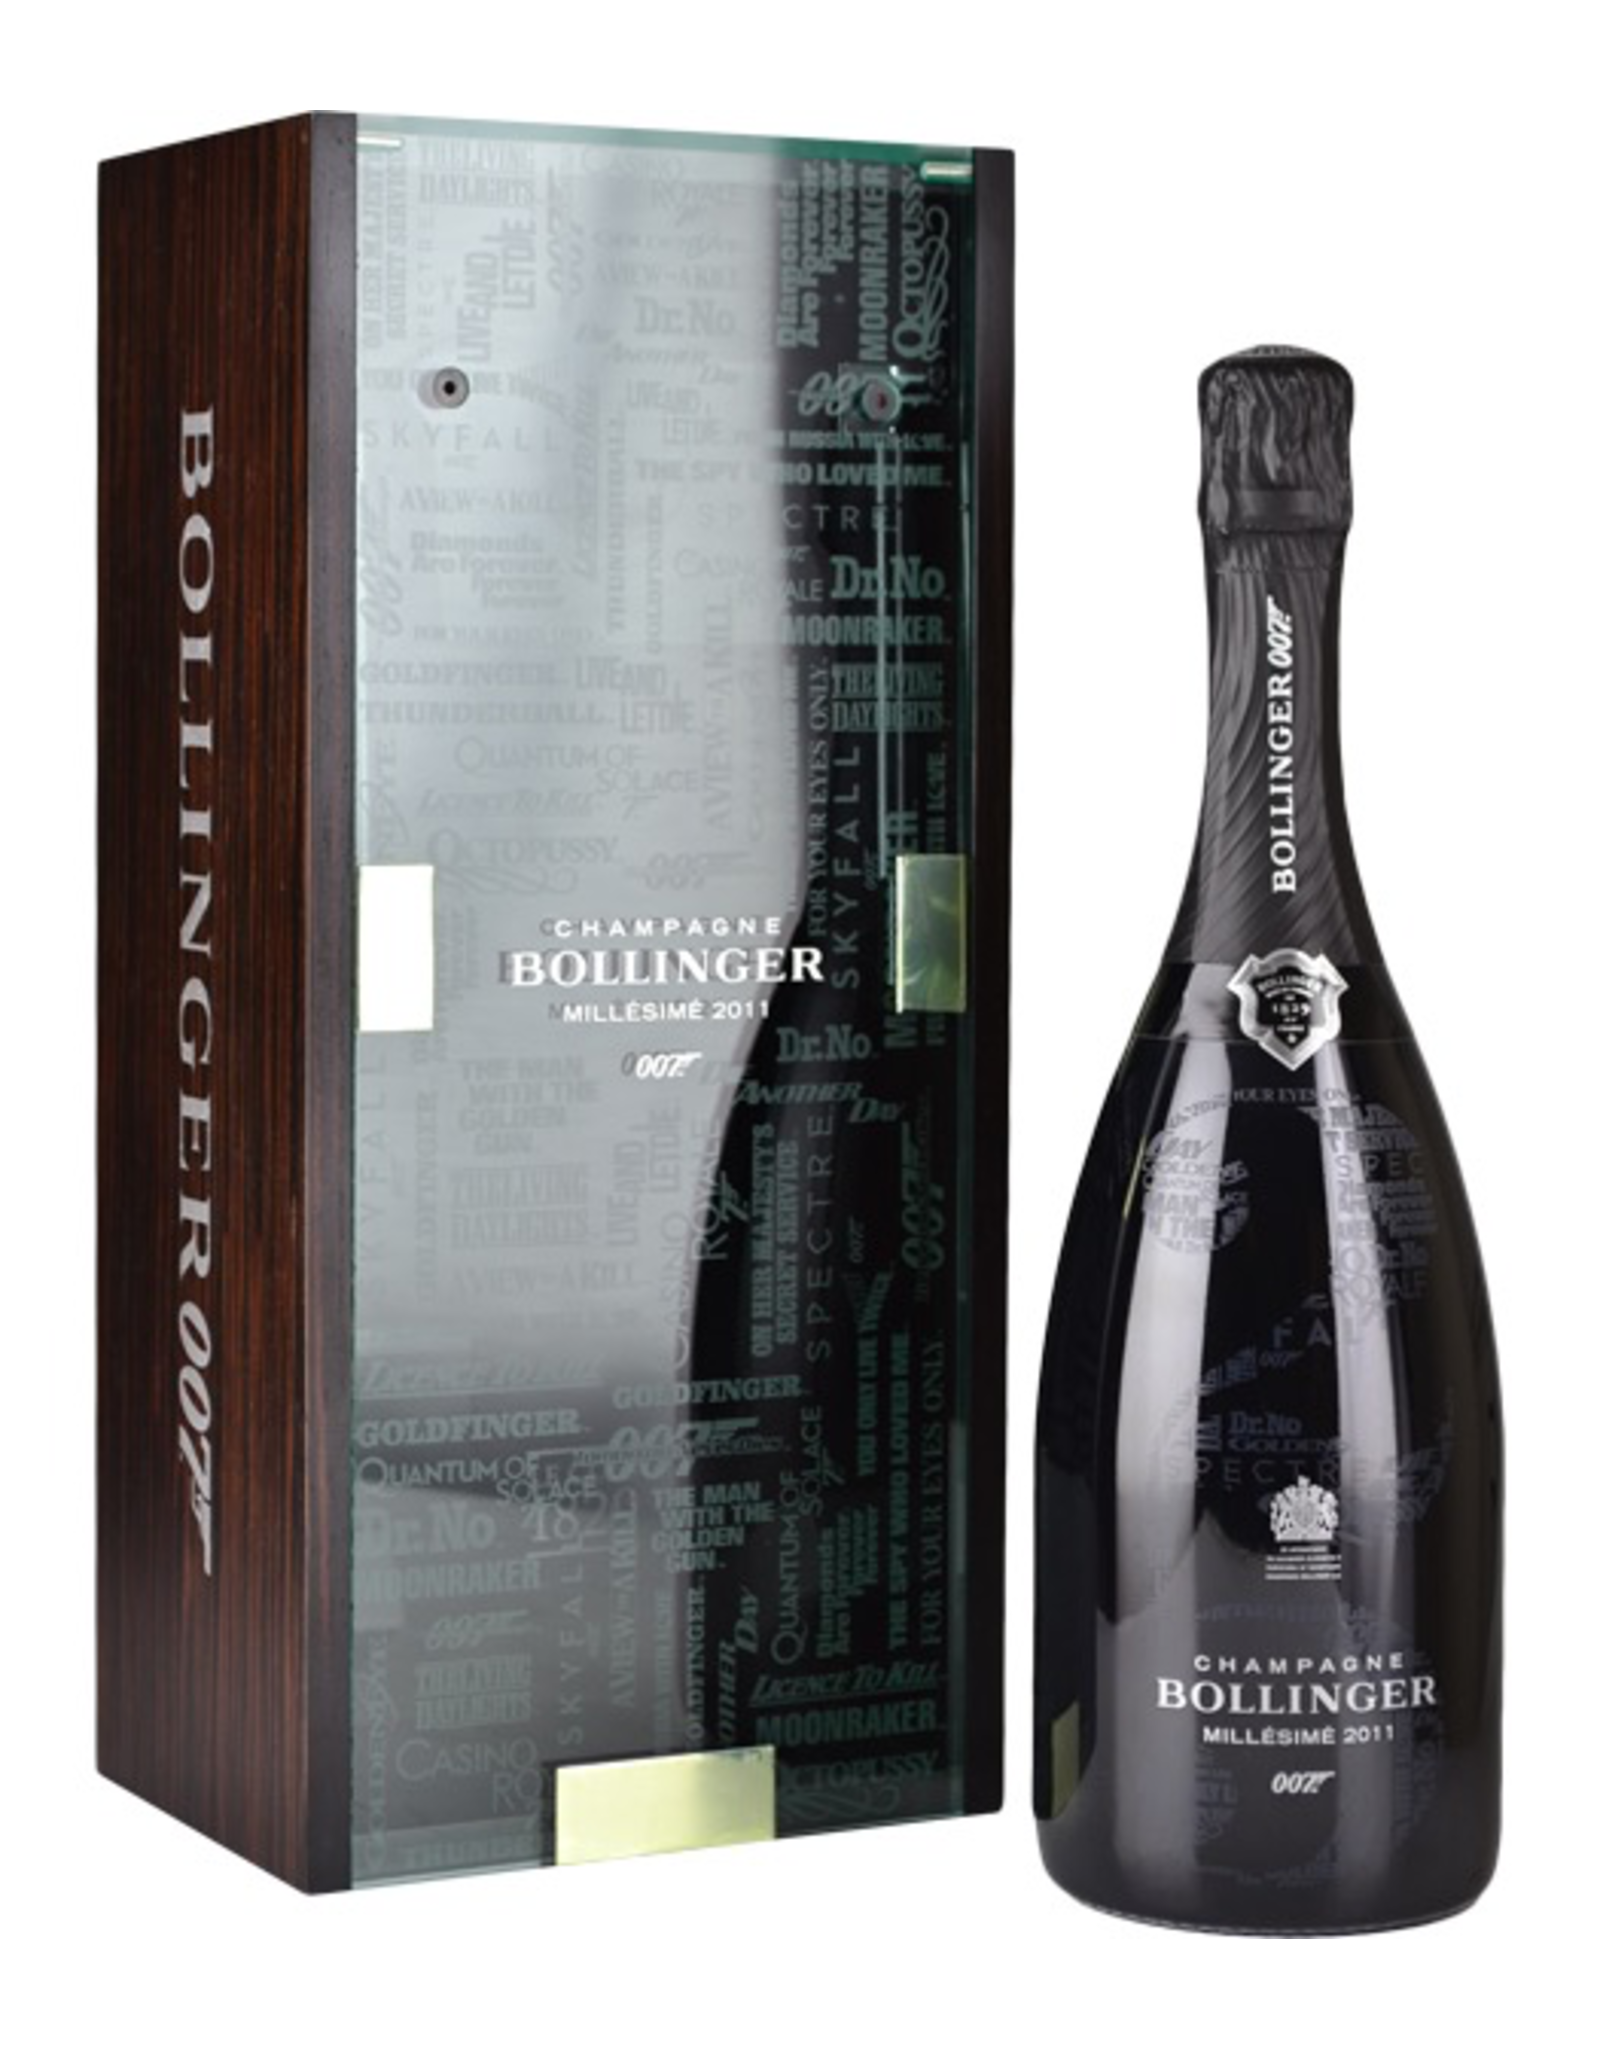 Sparkling Wine 2011, Bollinger 25th James Bond Limited Edition Millesime, Brut, 100% Pinot Noir Champagne, Ay, Champagne, France, 12% Alc, CTnr